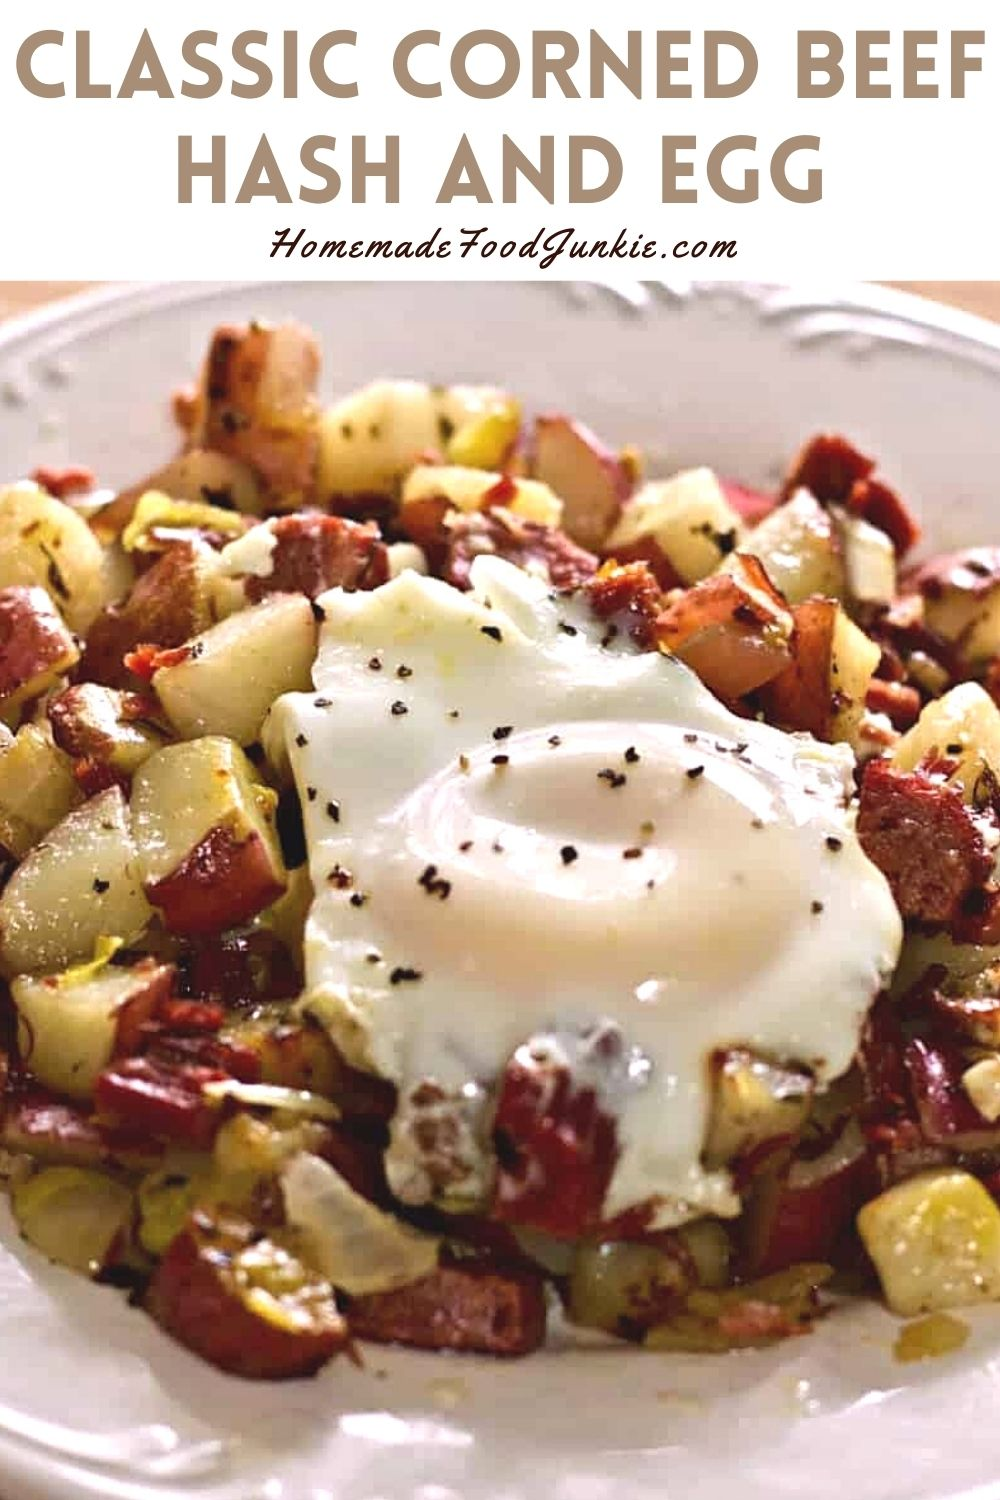 Classic Corned Beef Hash And Egg-Pin Image